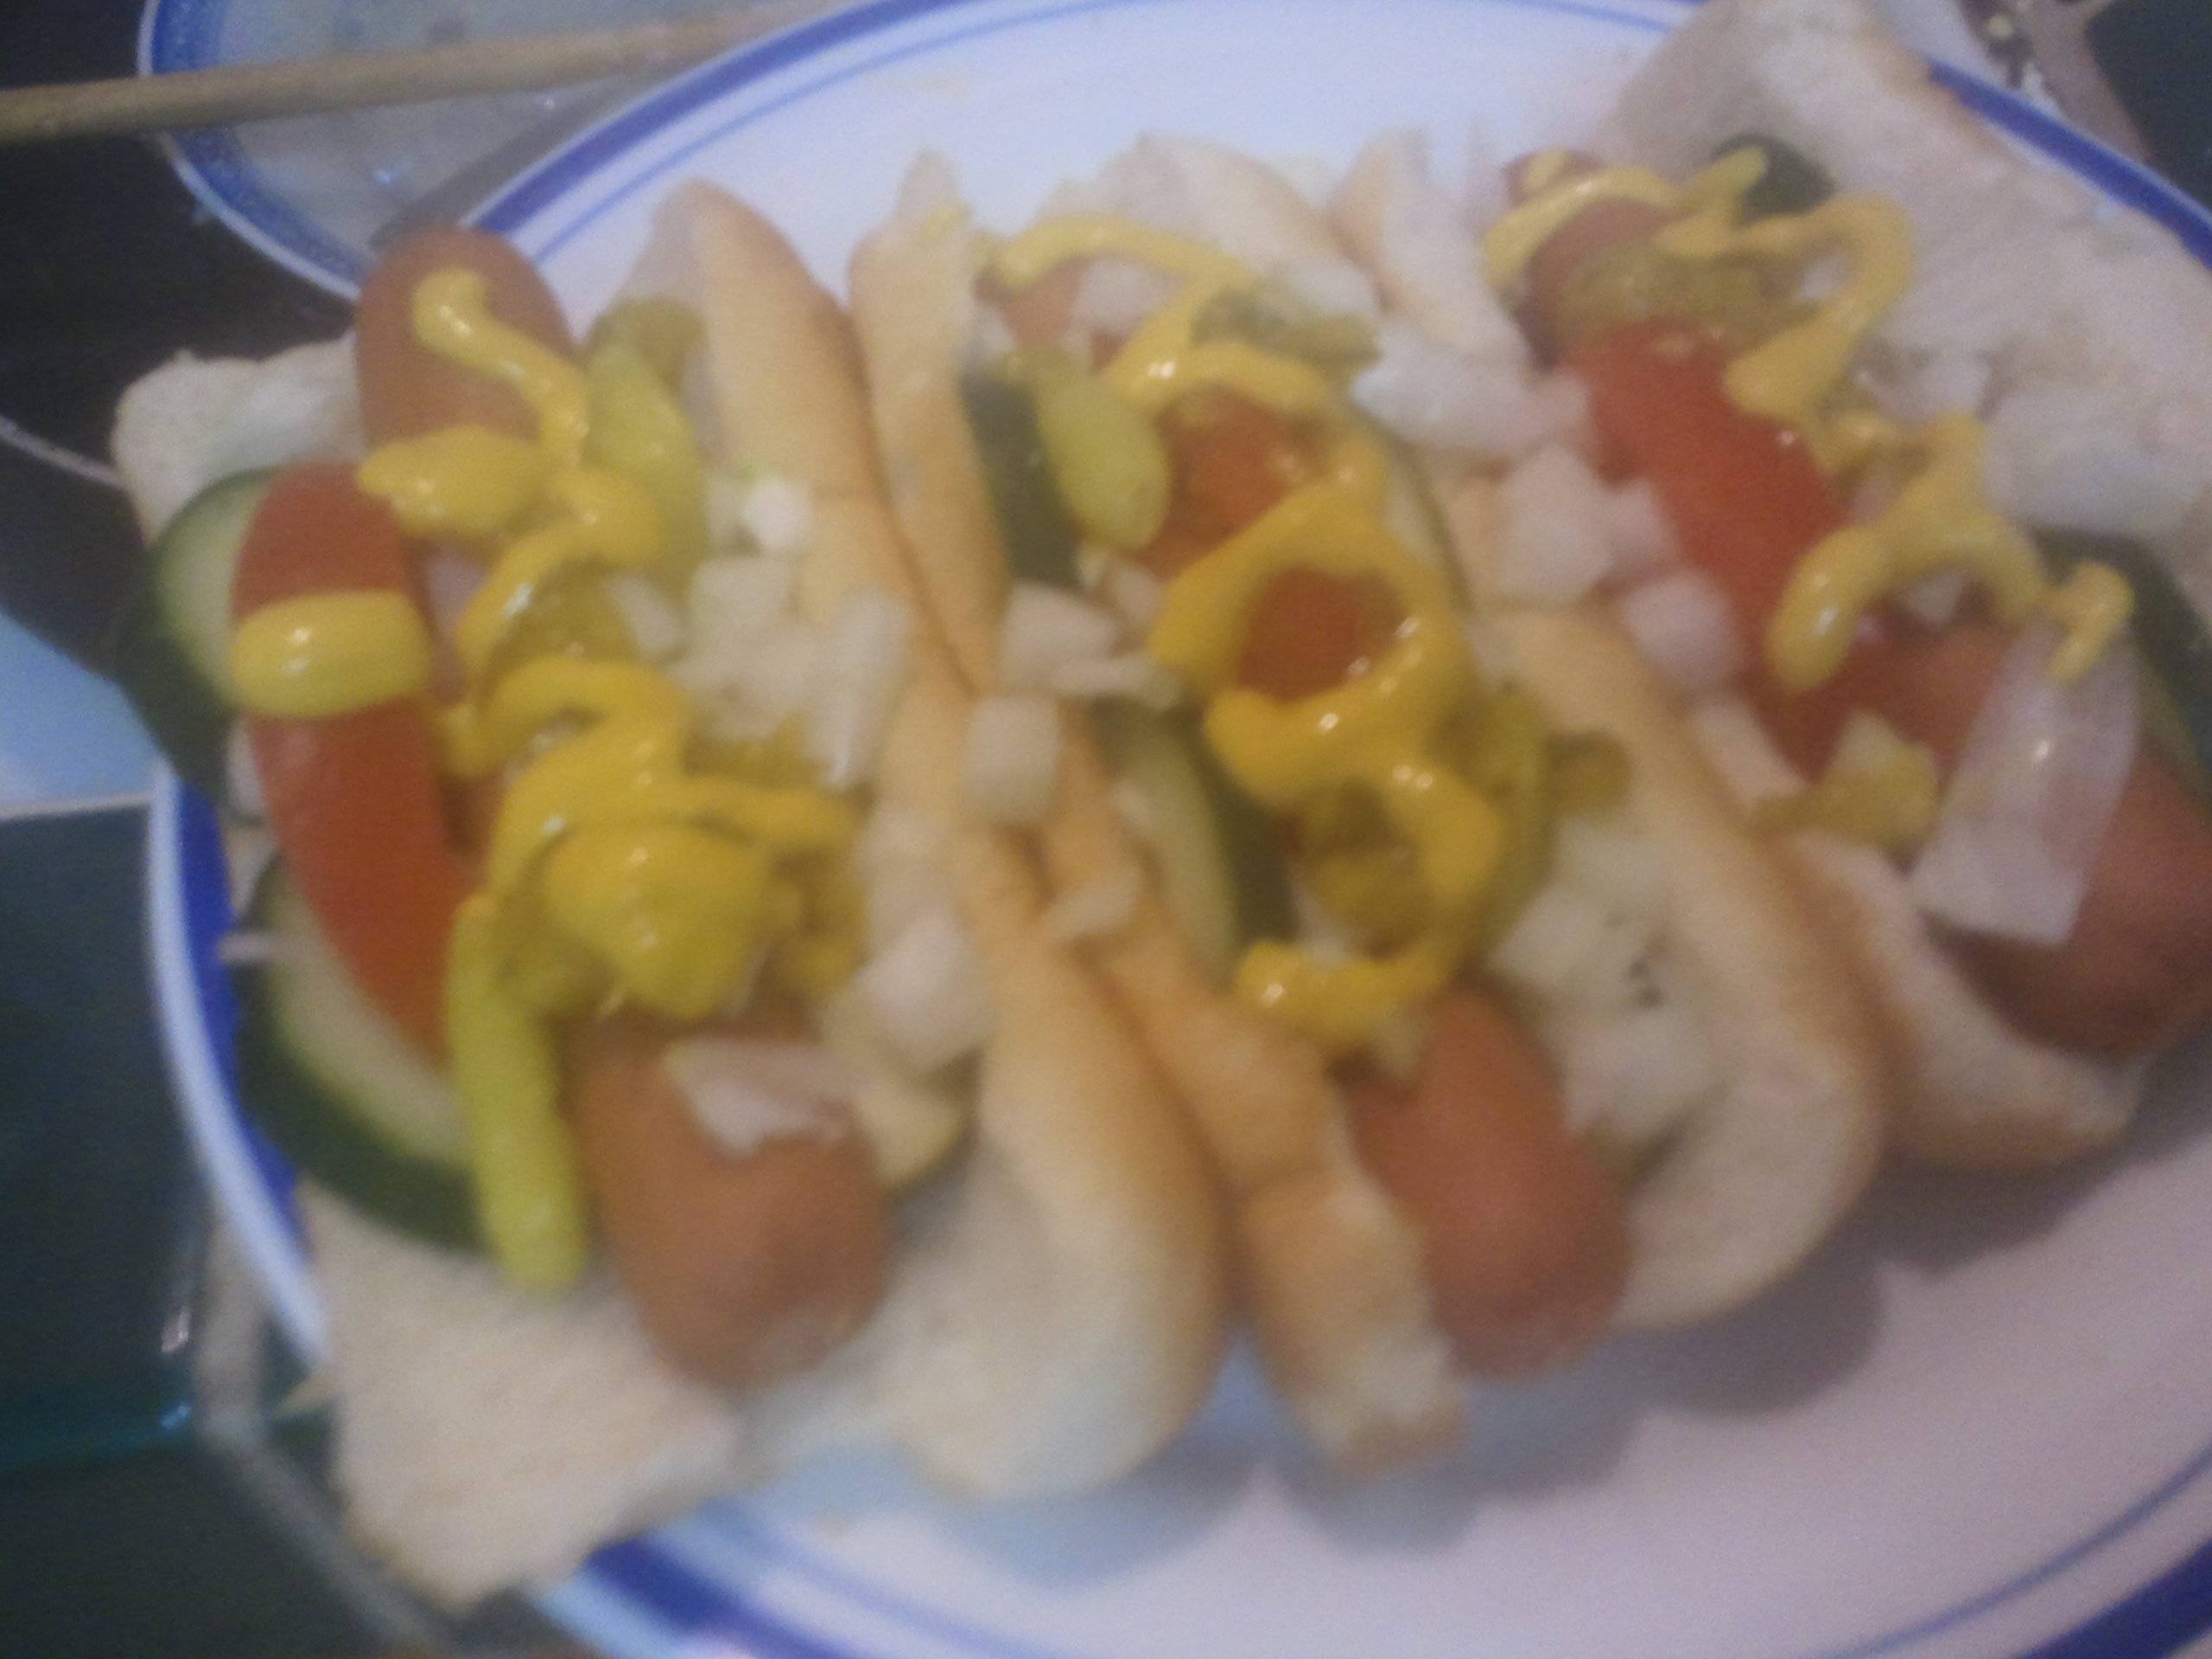 Mess o' Chicago dogs